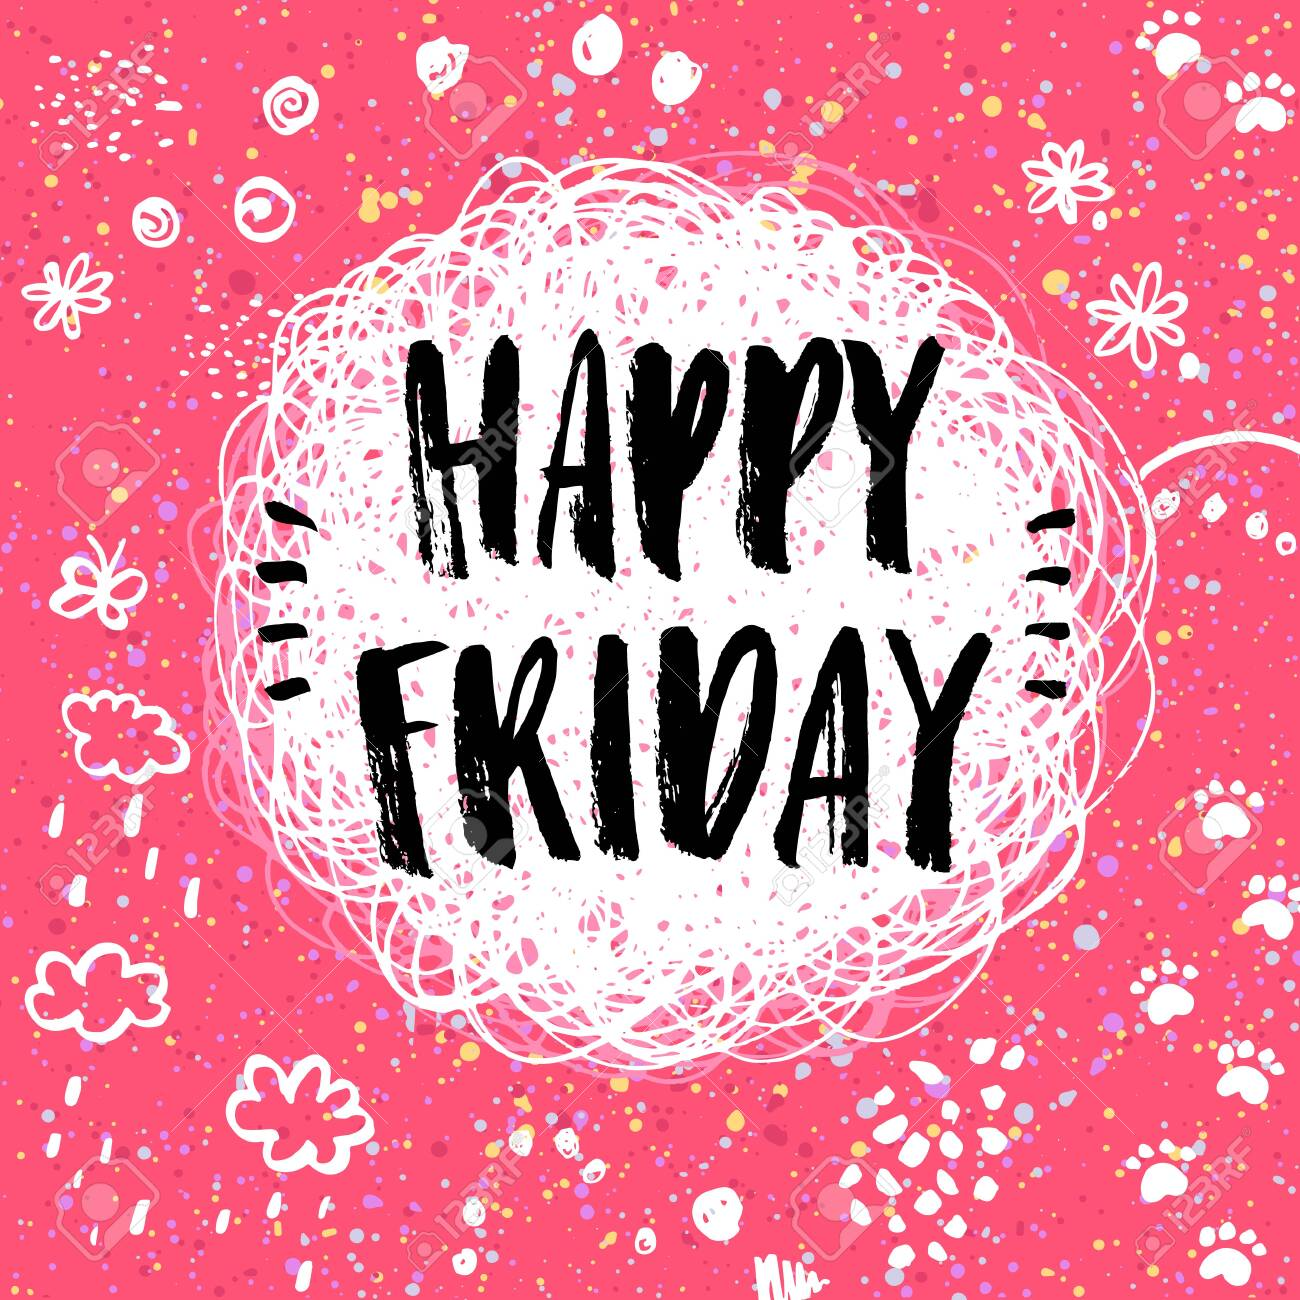 Happy Friday! hand drawn doodle lettering - 146982371